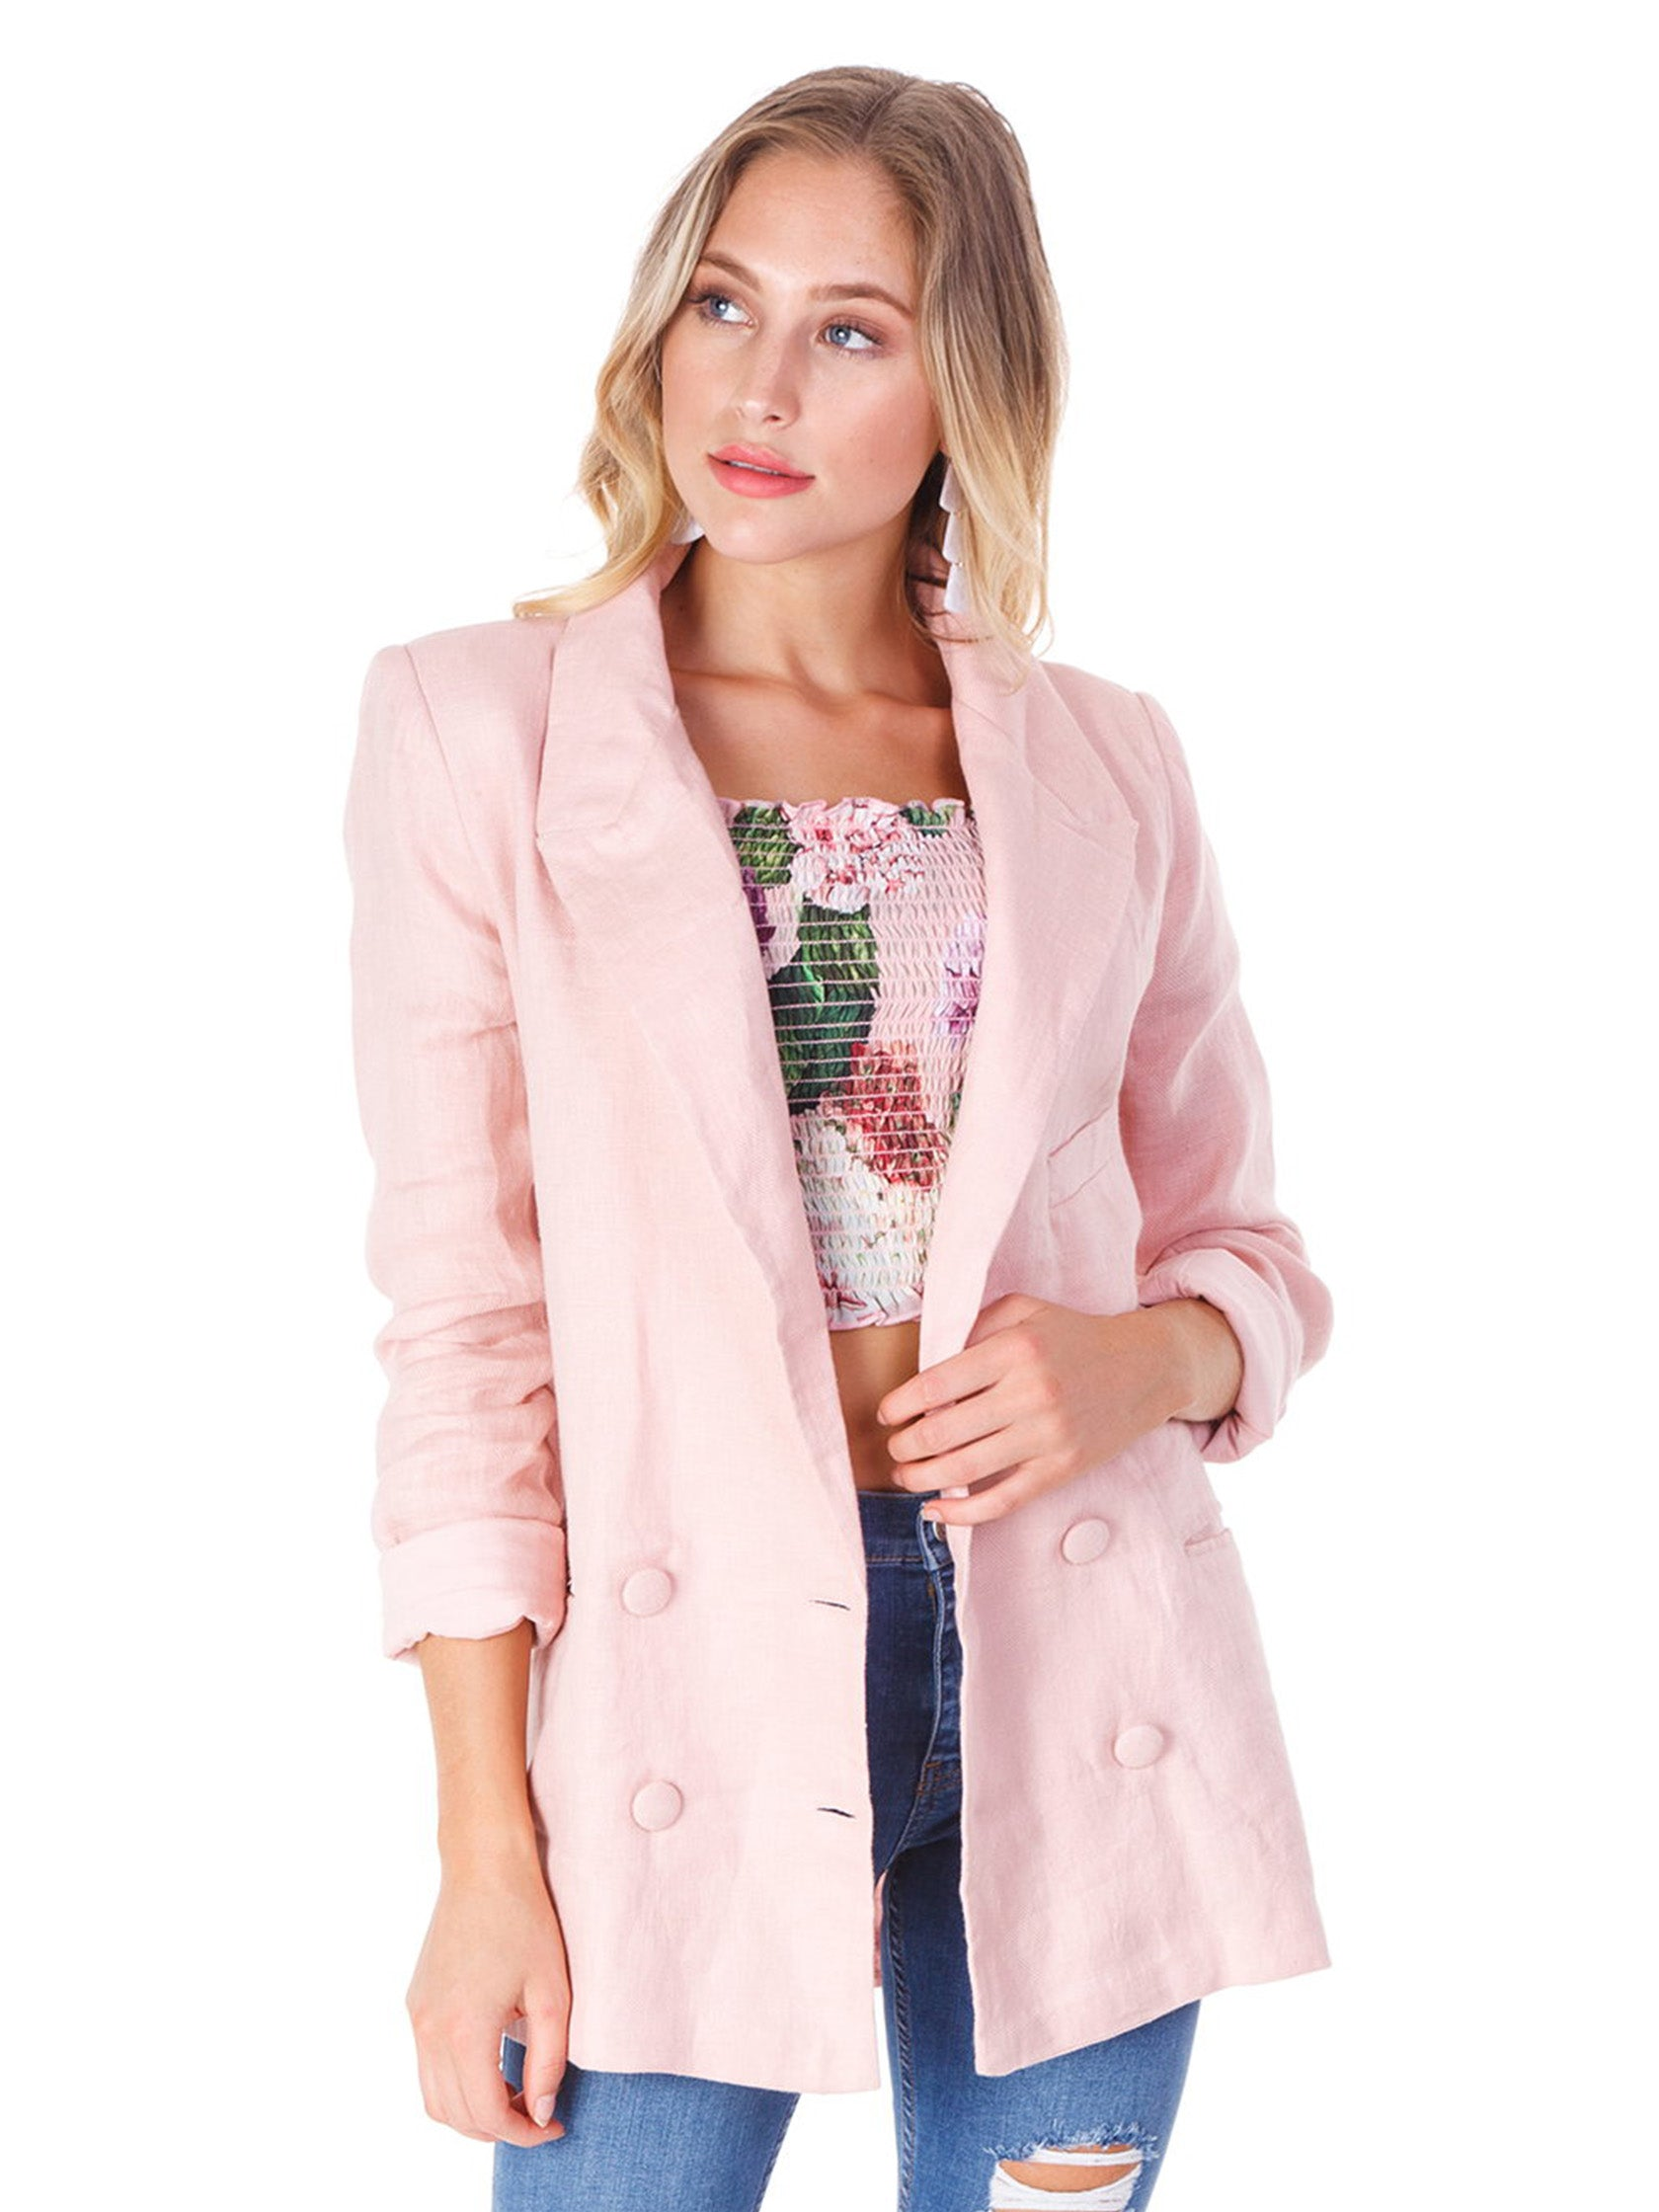 Girl outfit in a blazer rental from Lovers + Friends called Fanning Blazer